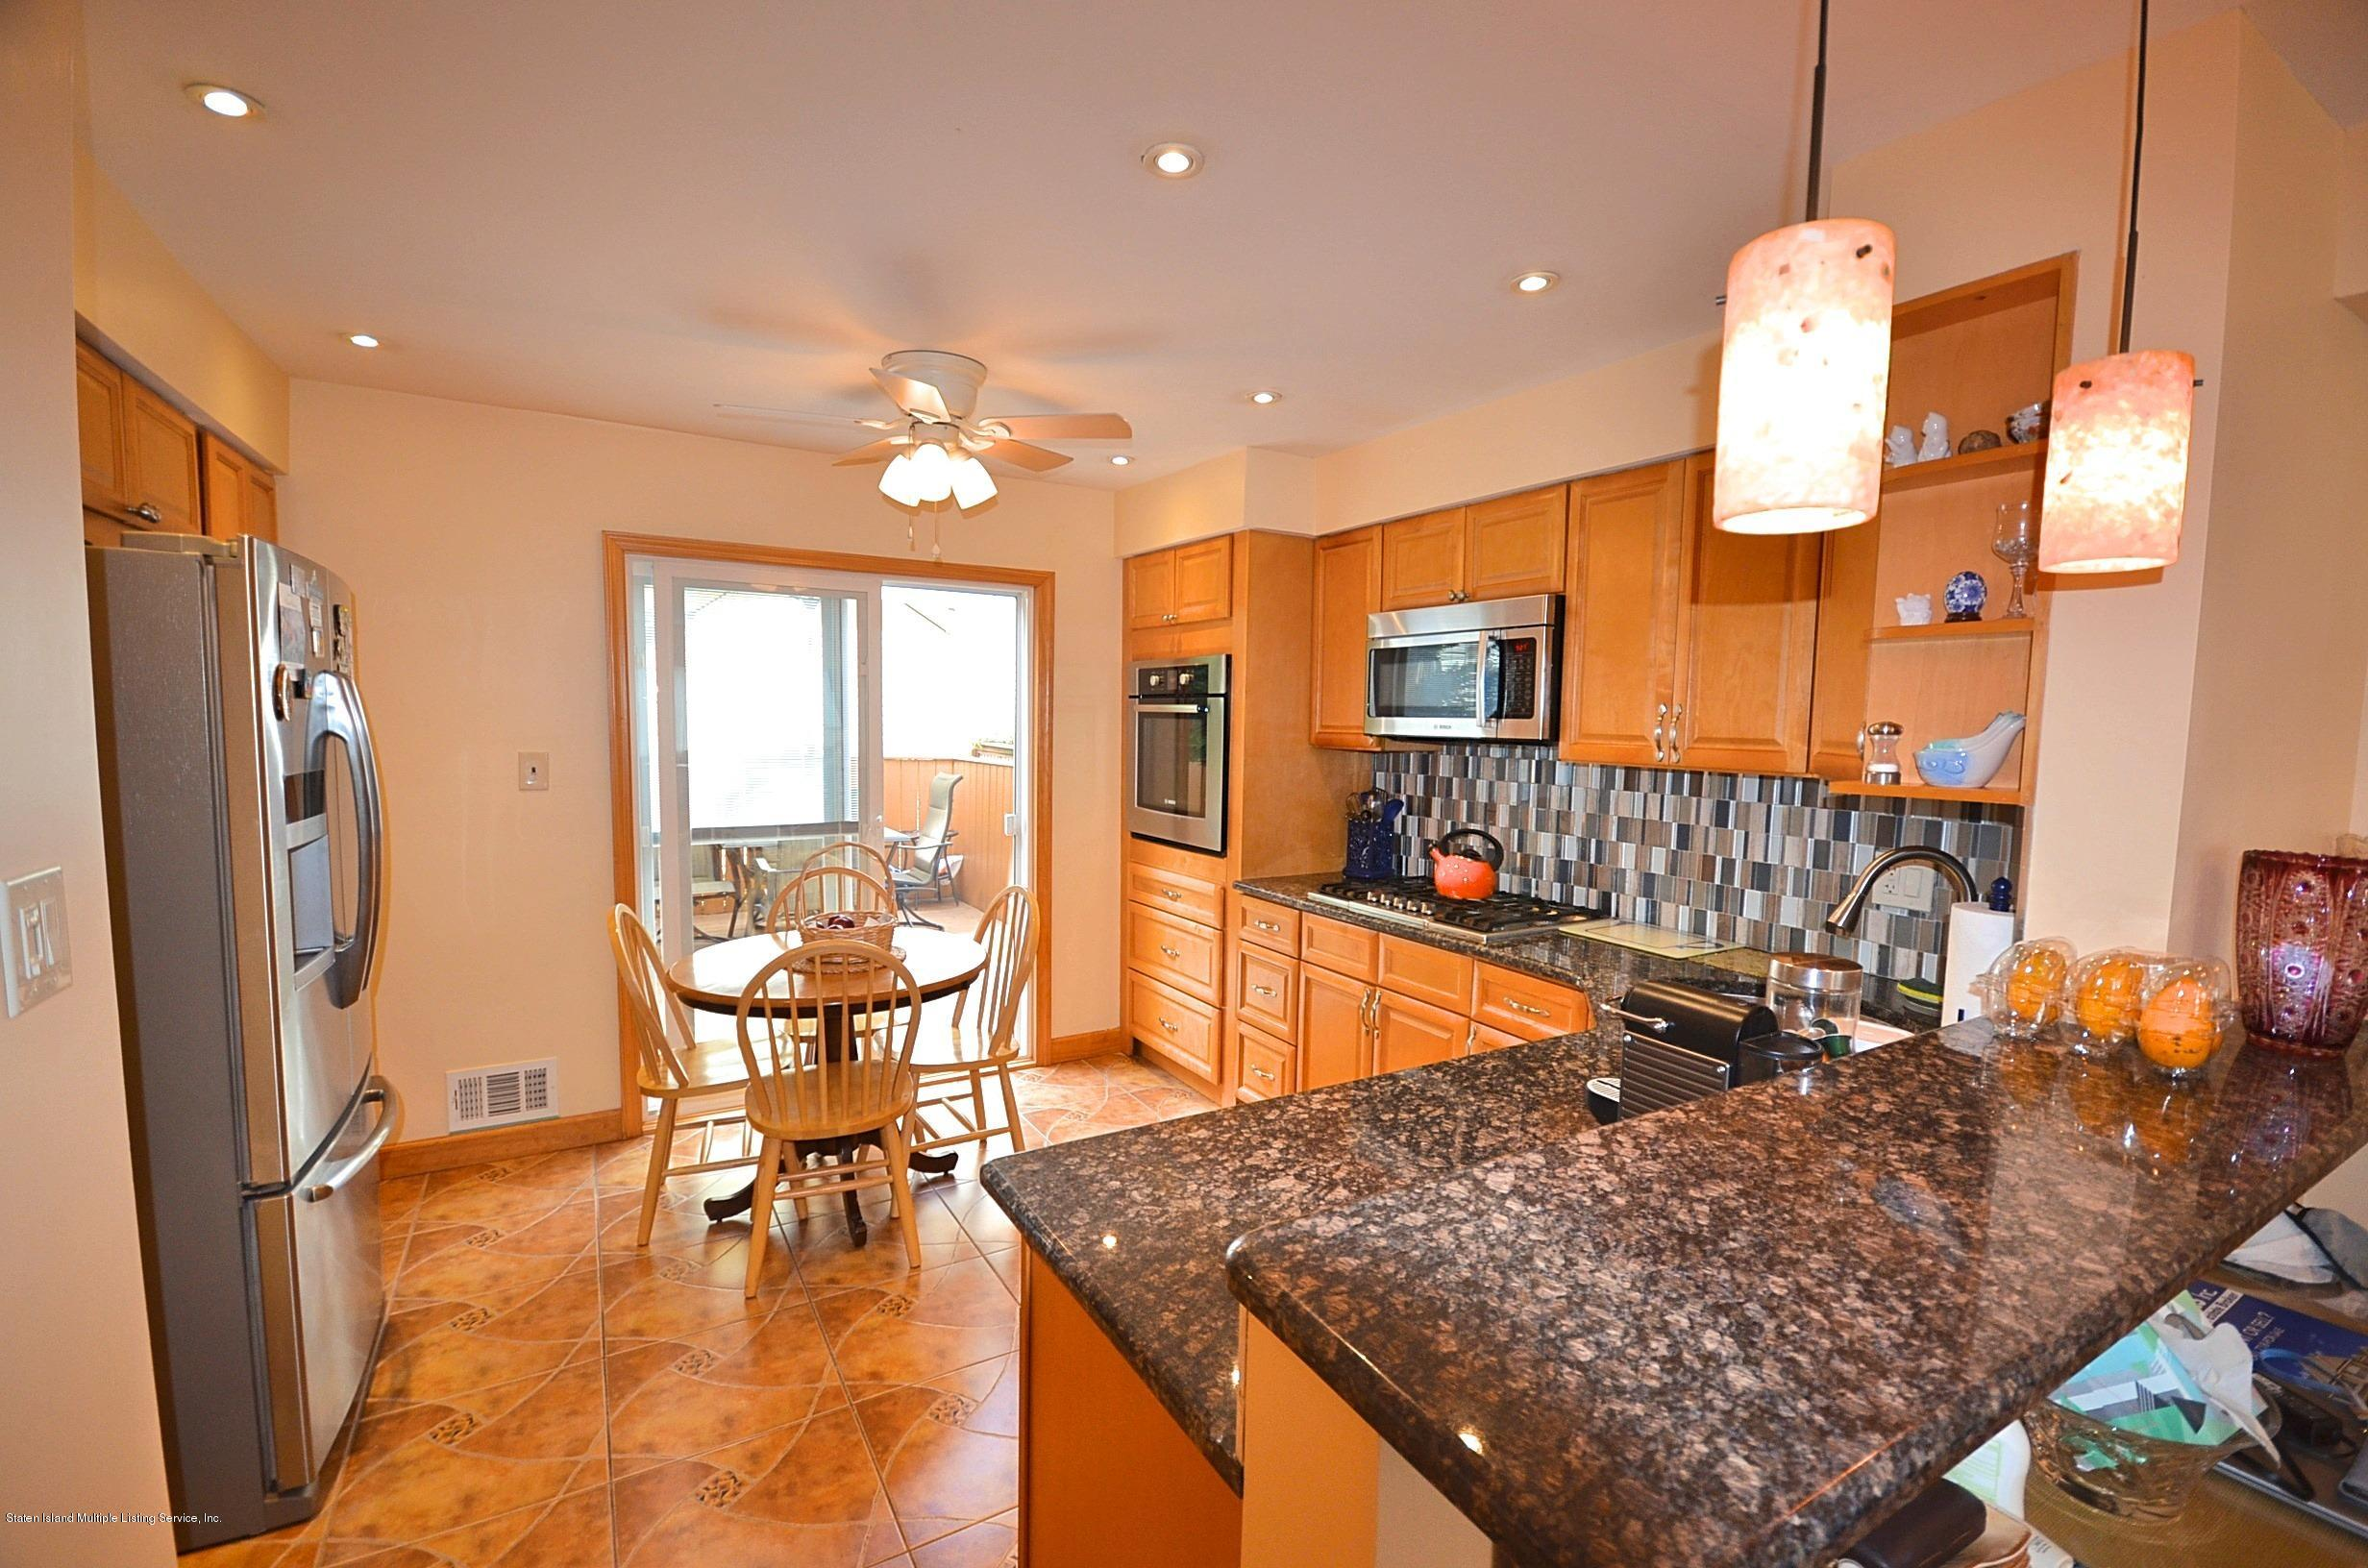 Single Family - Attached 16 Lillie Lane  Staten Island, NY 10314, MLS-1138605-6